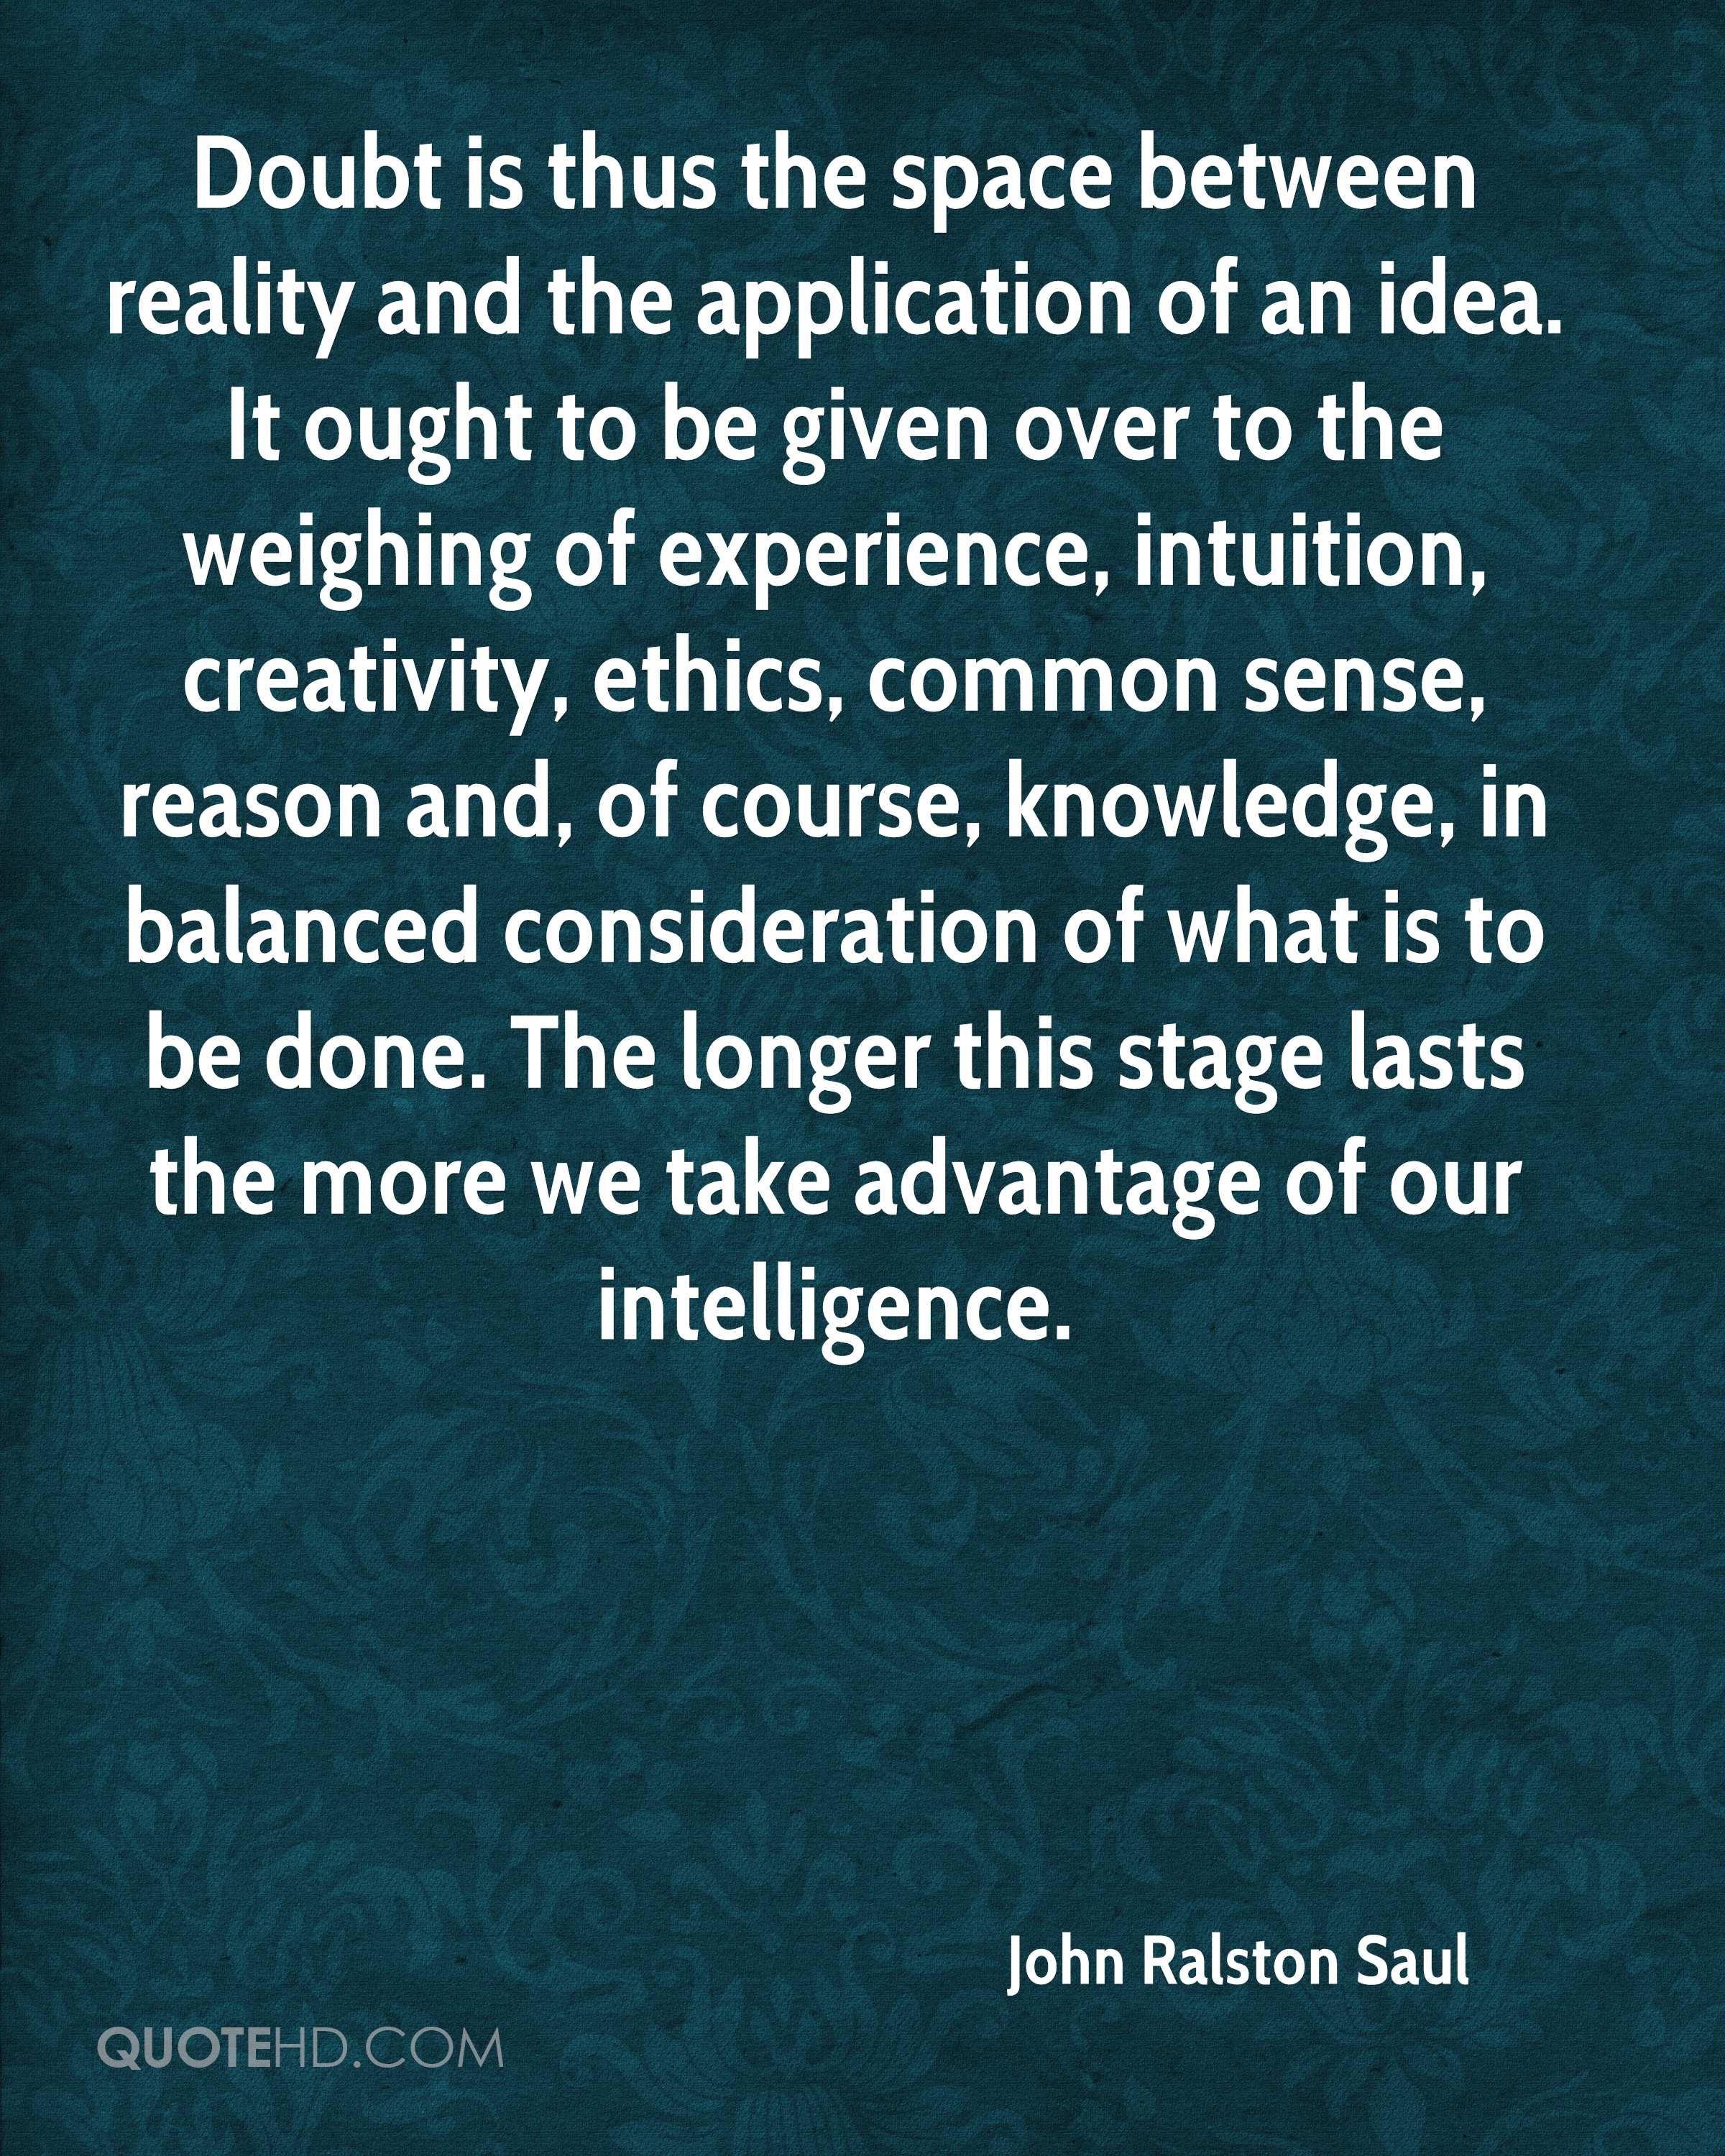 Doubt is thus the space between reality and the application of an idea. It ought to be given over to the weighing of experience, intuition, creativity, ethics, common sense, reason and, of course, knowledge, in balanced consideration of what is to be done. The longer this stage lasts the more we take advantage of our intelligence.